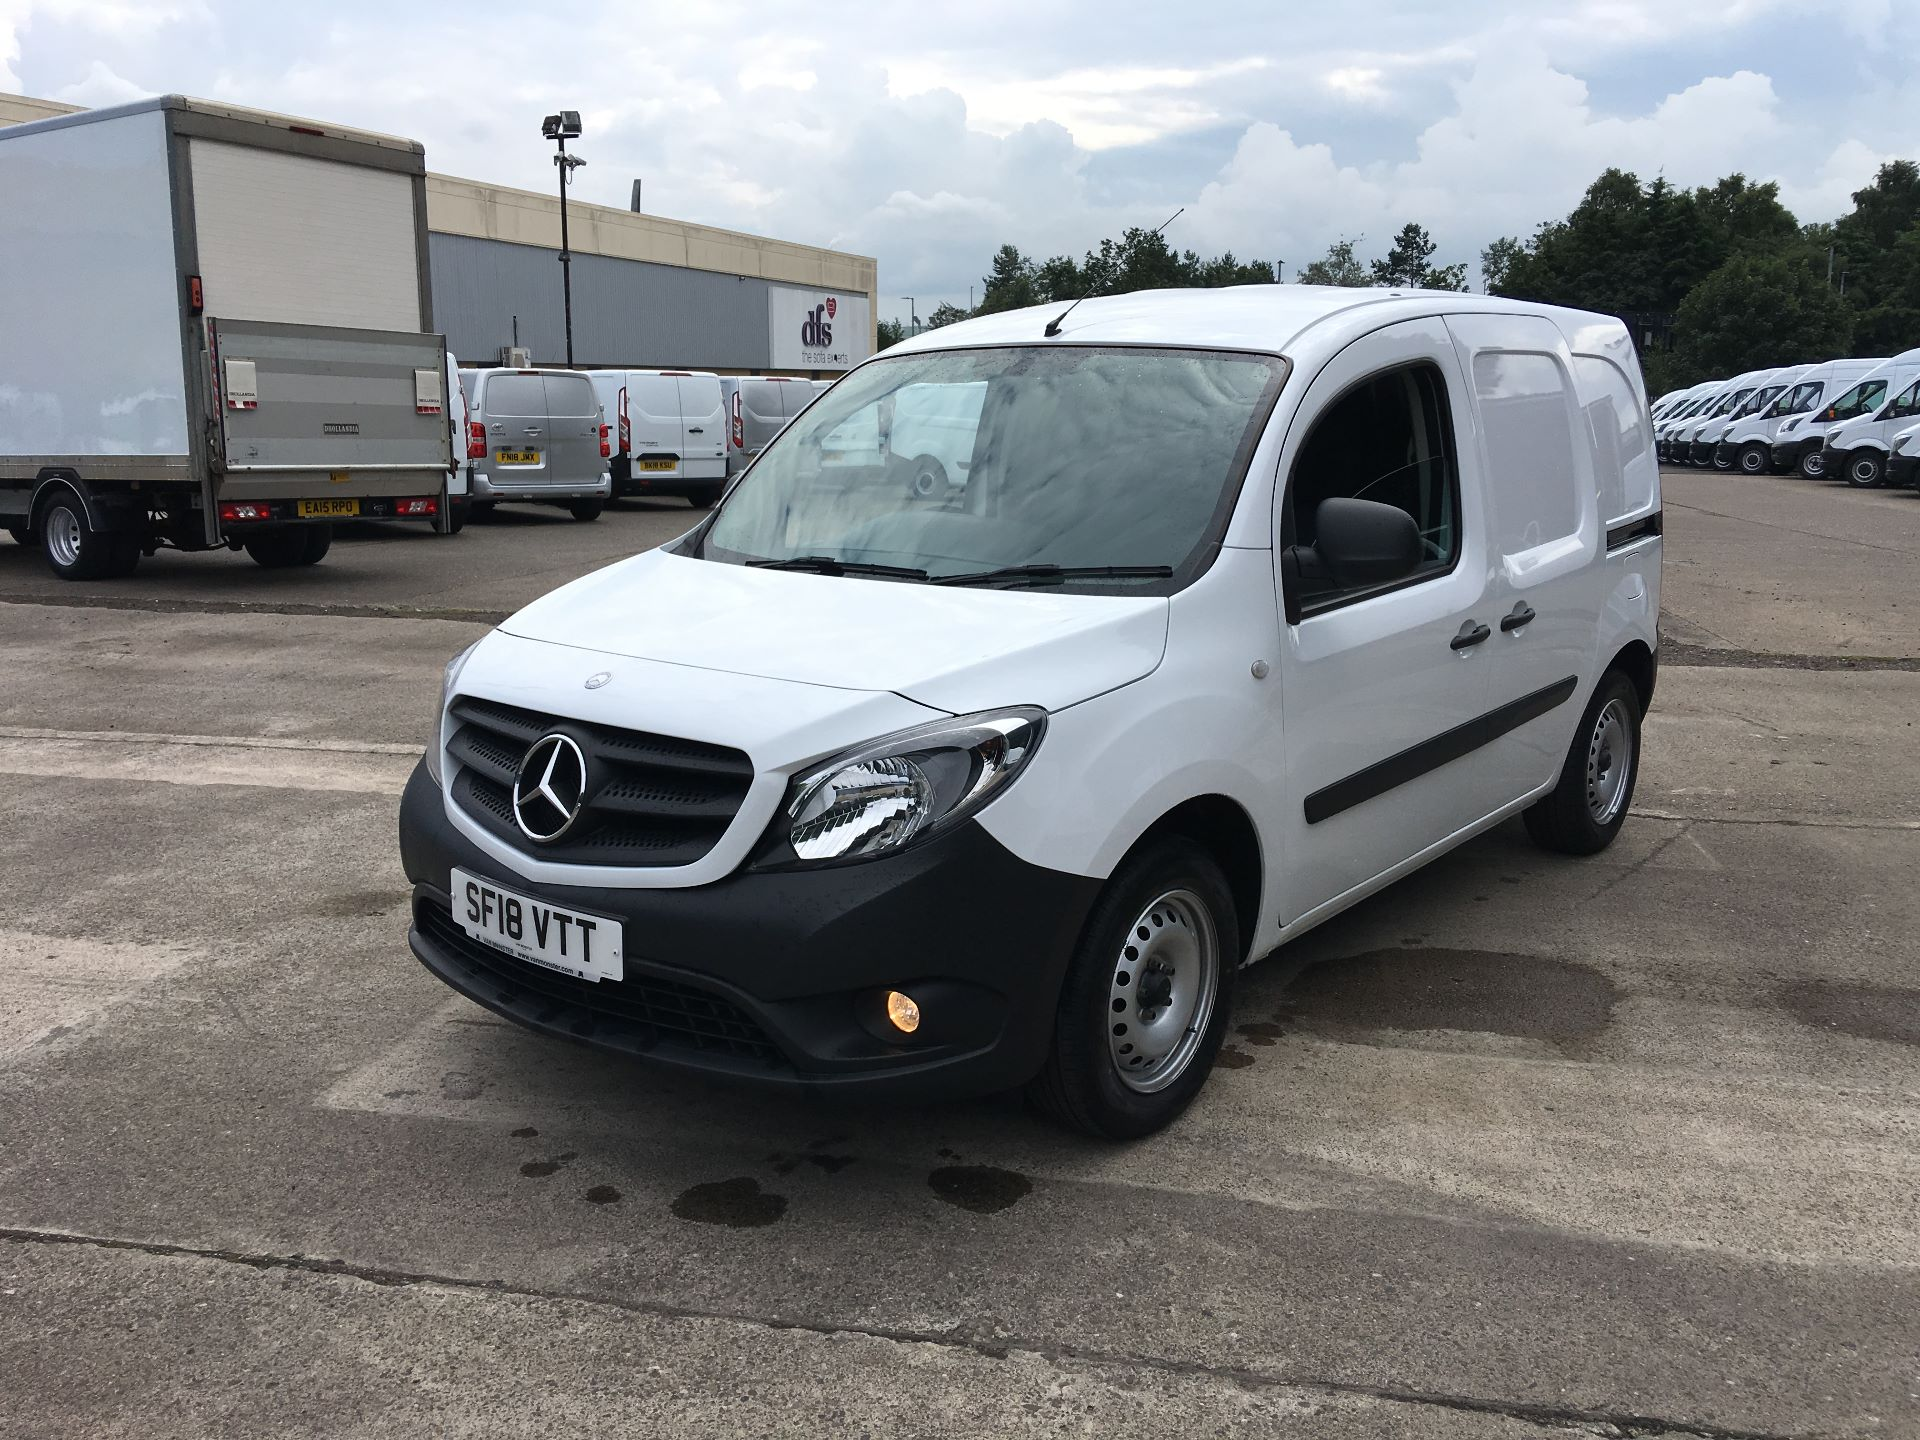 2018 Mercedes-Benz Citan LWB 109 CDI BLUE EFFICIENCY VAN EURO 5/6 (SF18VTT) Thumbnail 16